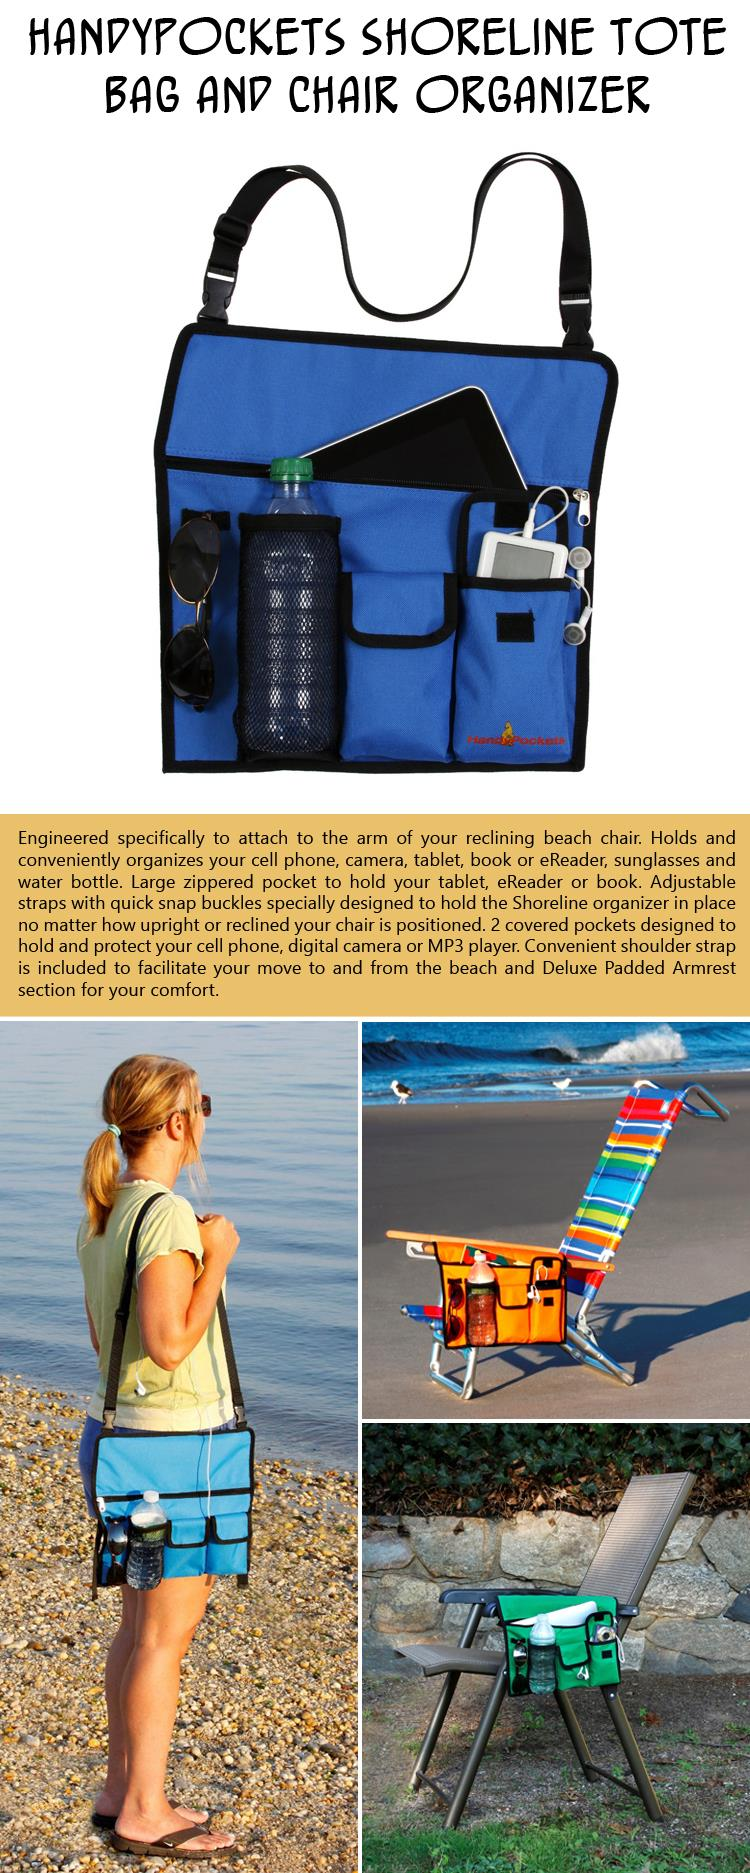 HandyPockets Shoreline Tote Bag and Chair Organizer